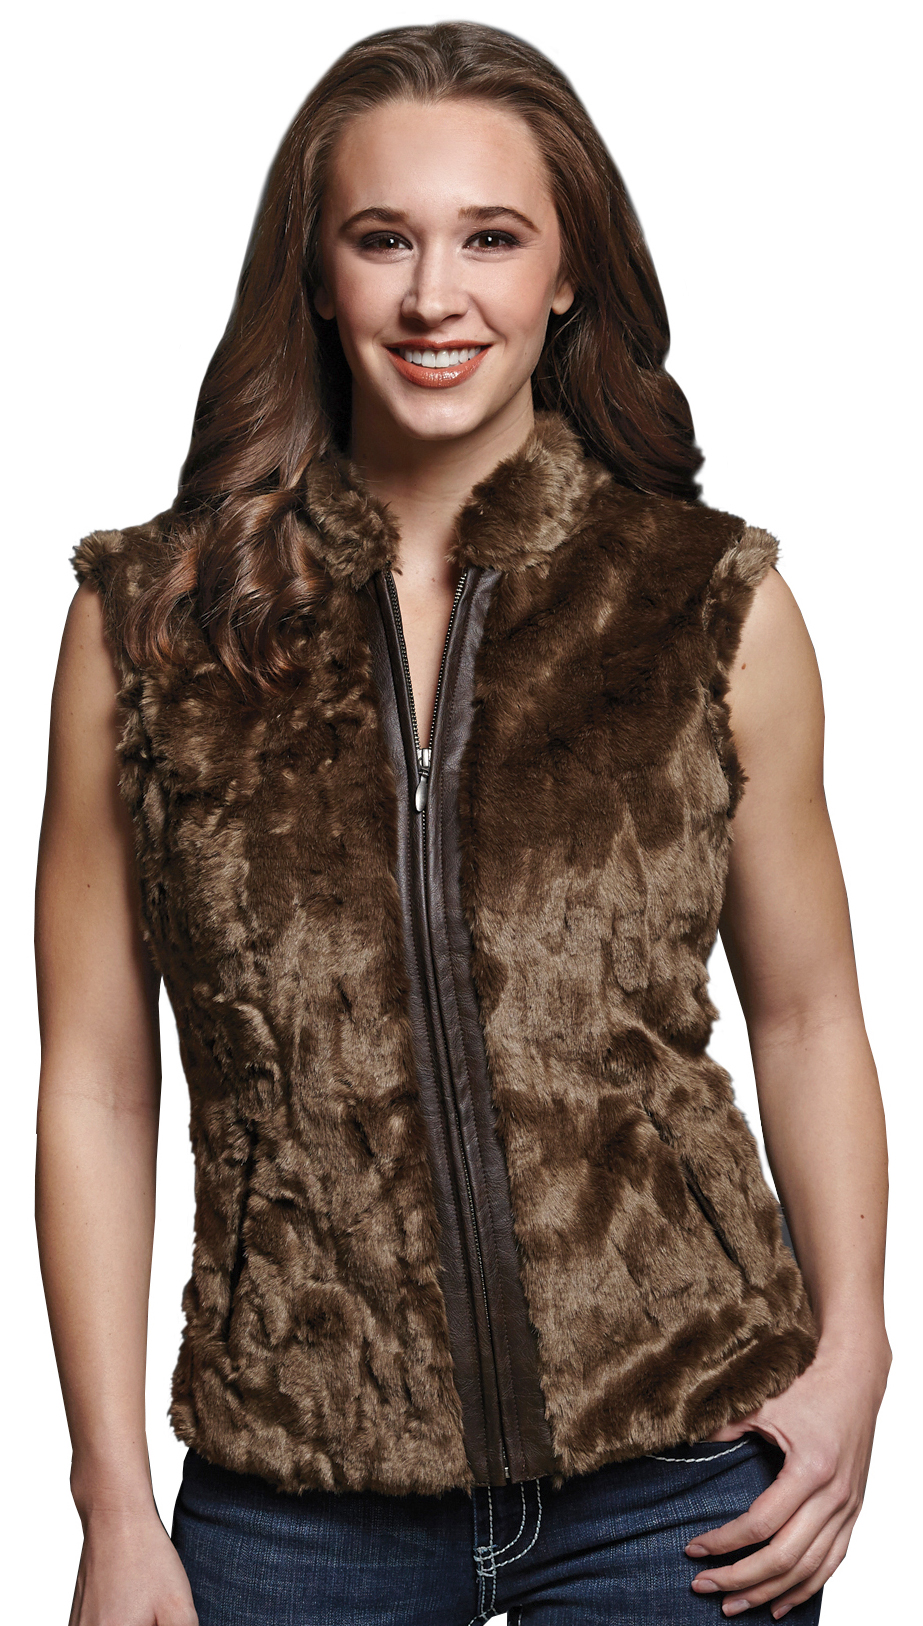 Cripple Creek Women's Faux Fur Brown Sweater Vest - Country Outfitter